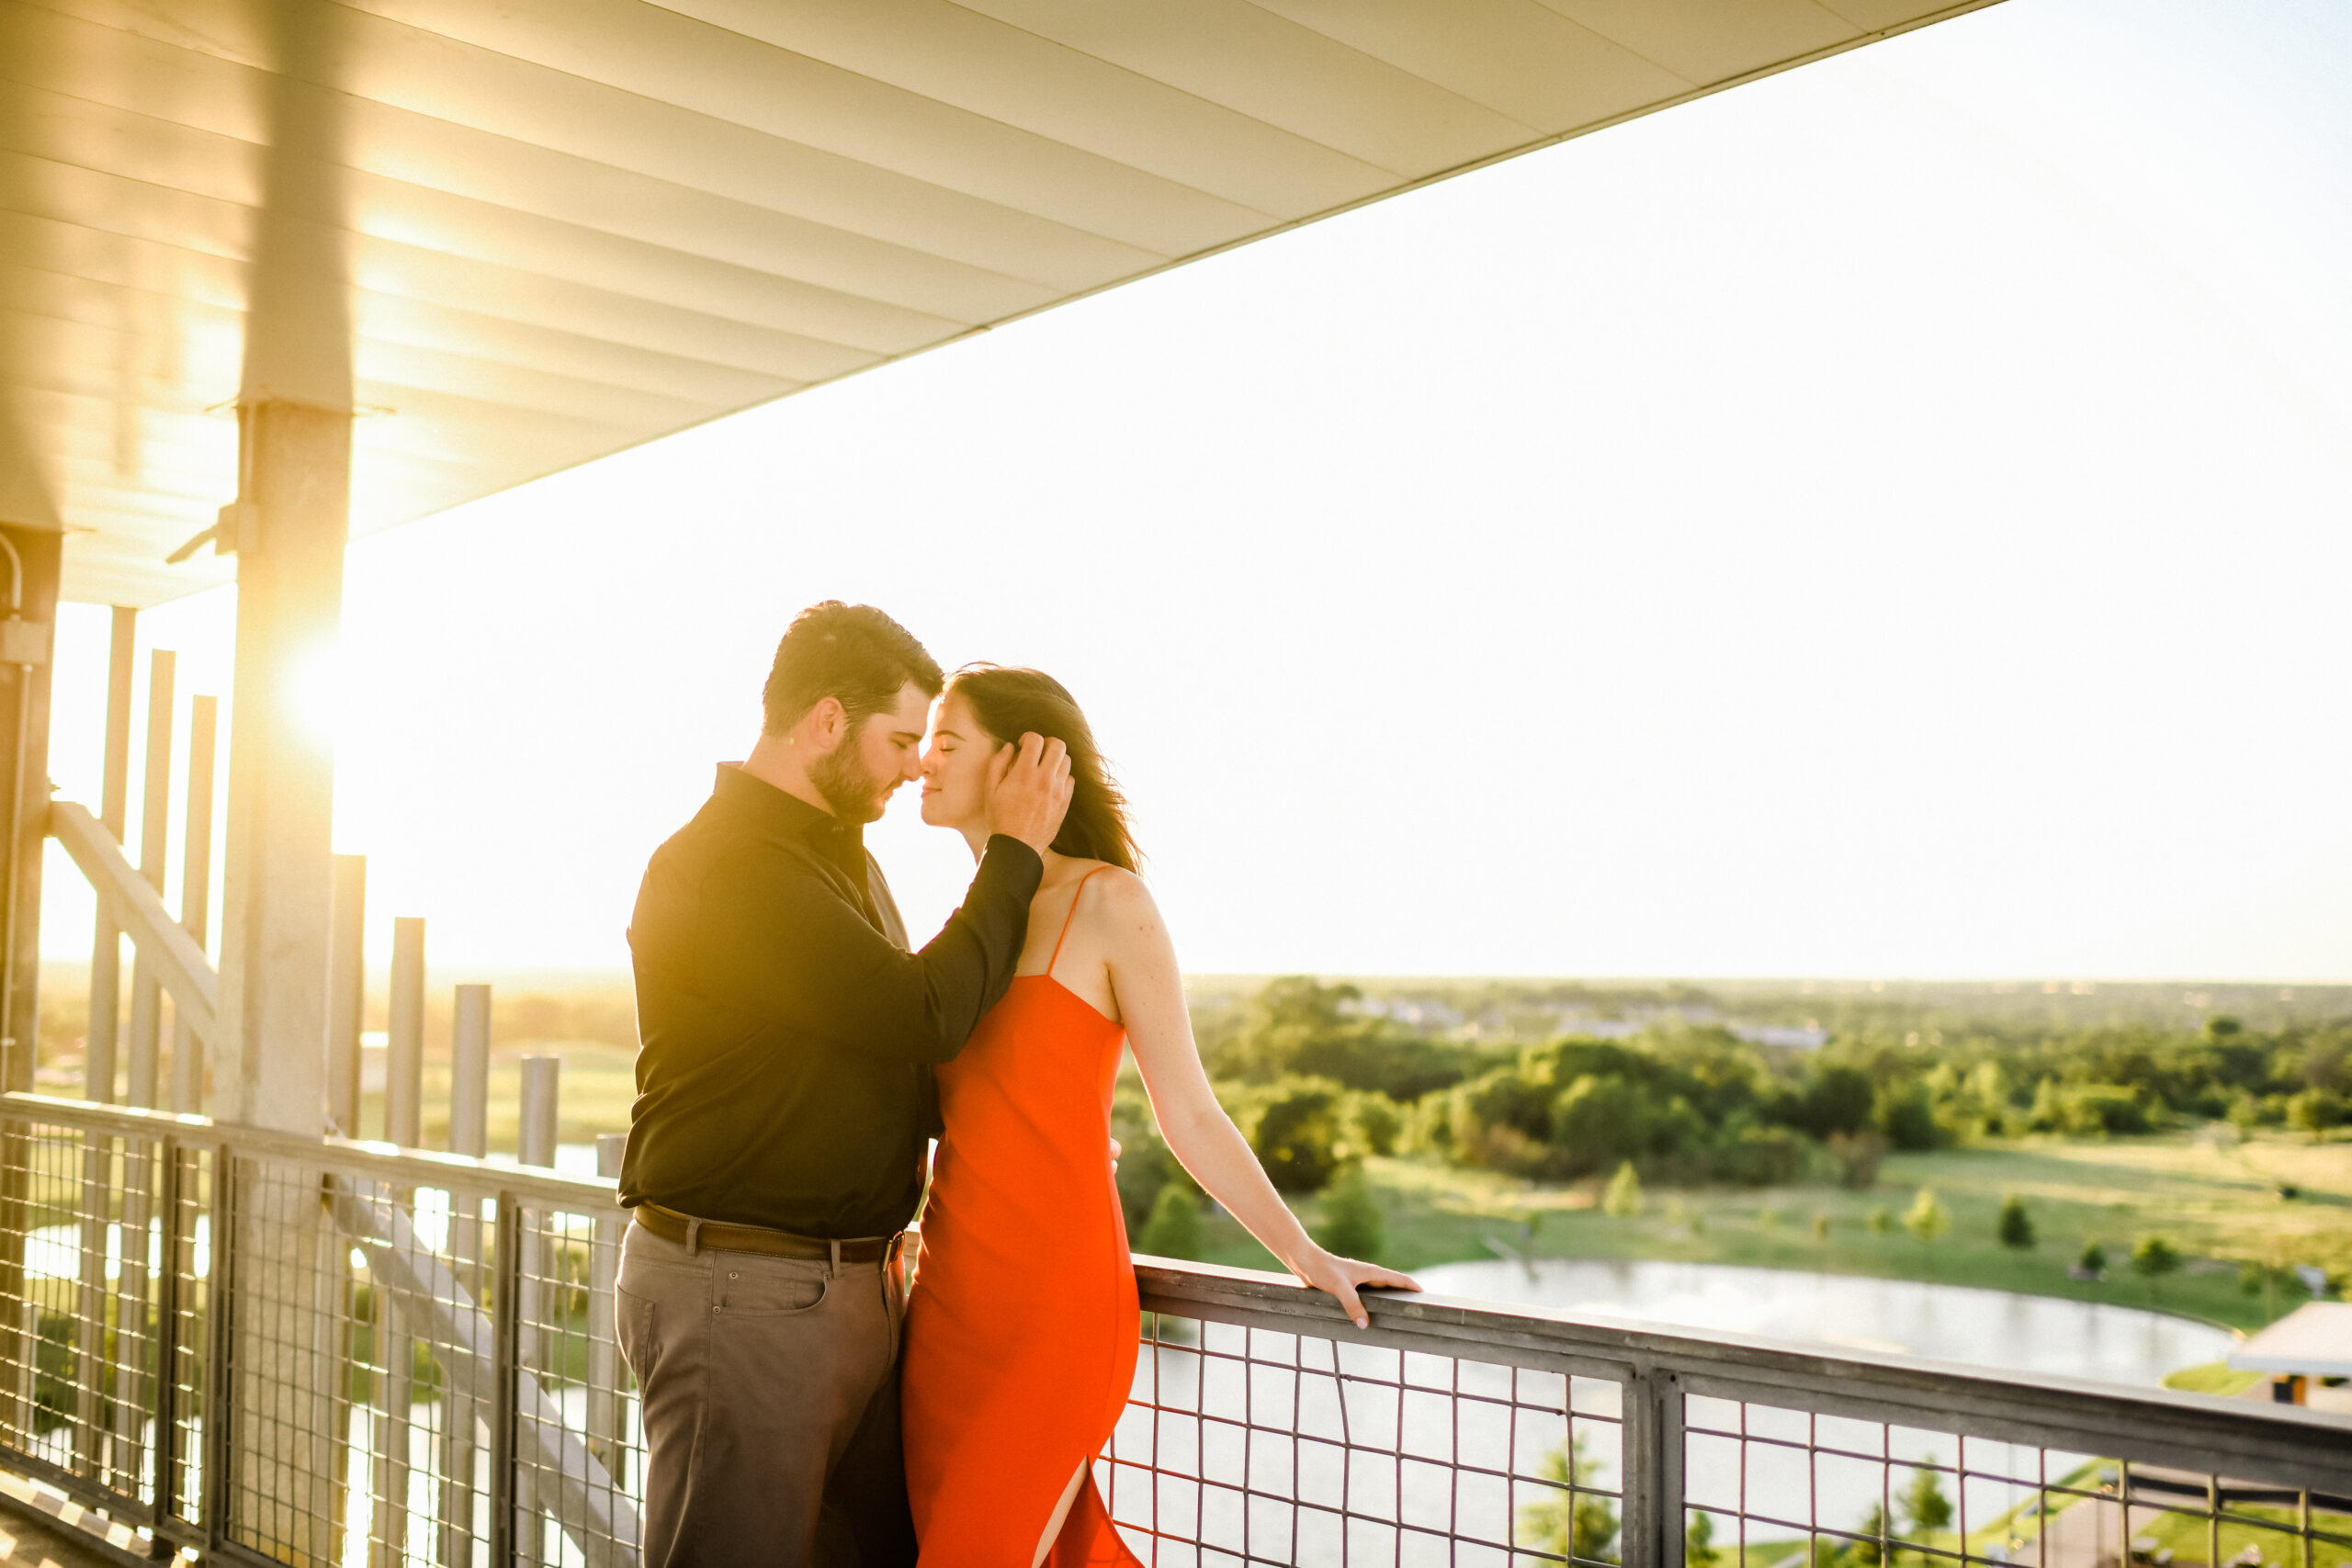 Kat & Keith's Engagement Session at The Stella Hotel and Hershel's Whiskey Bar in College Station Texas